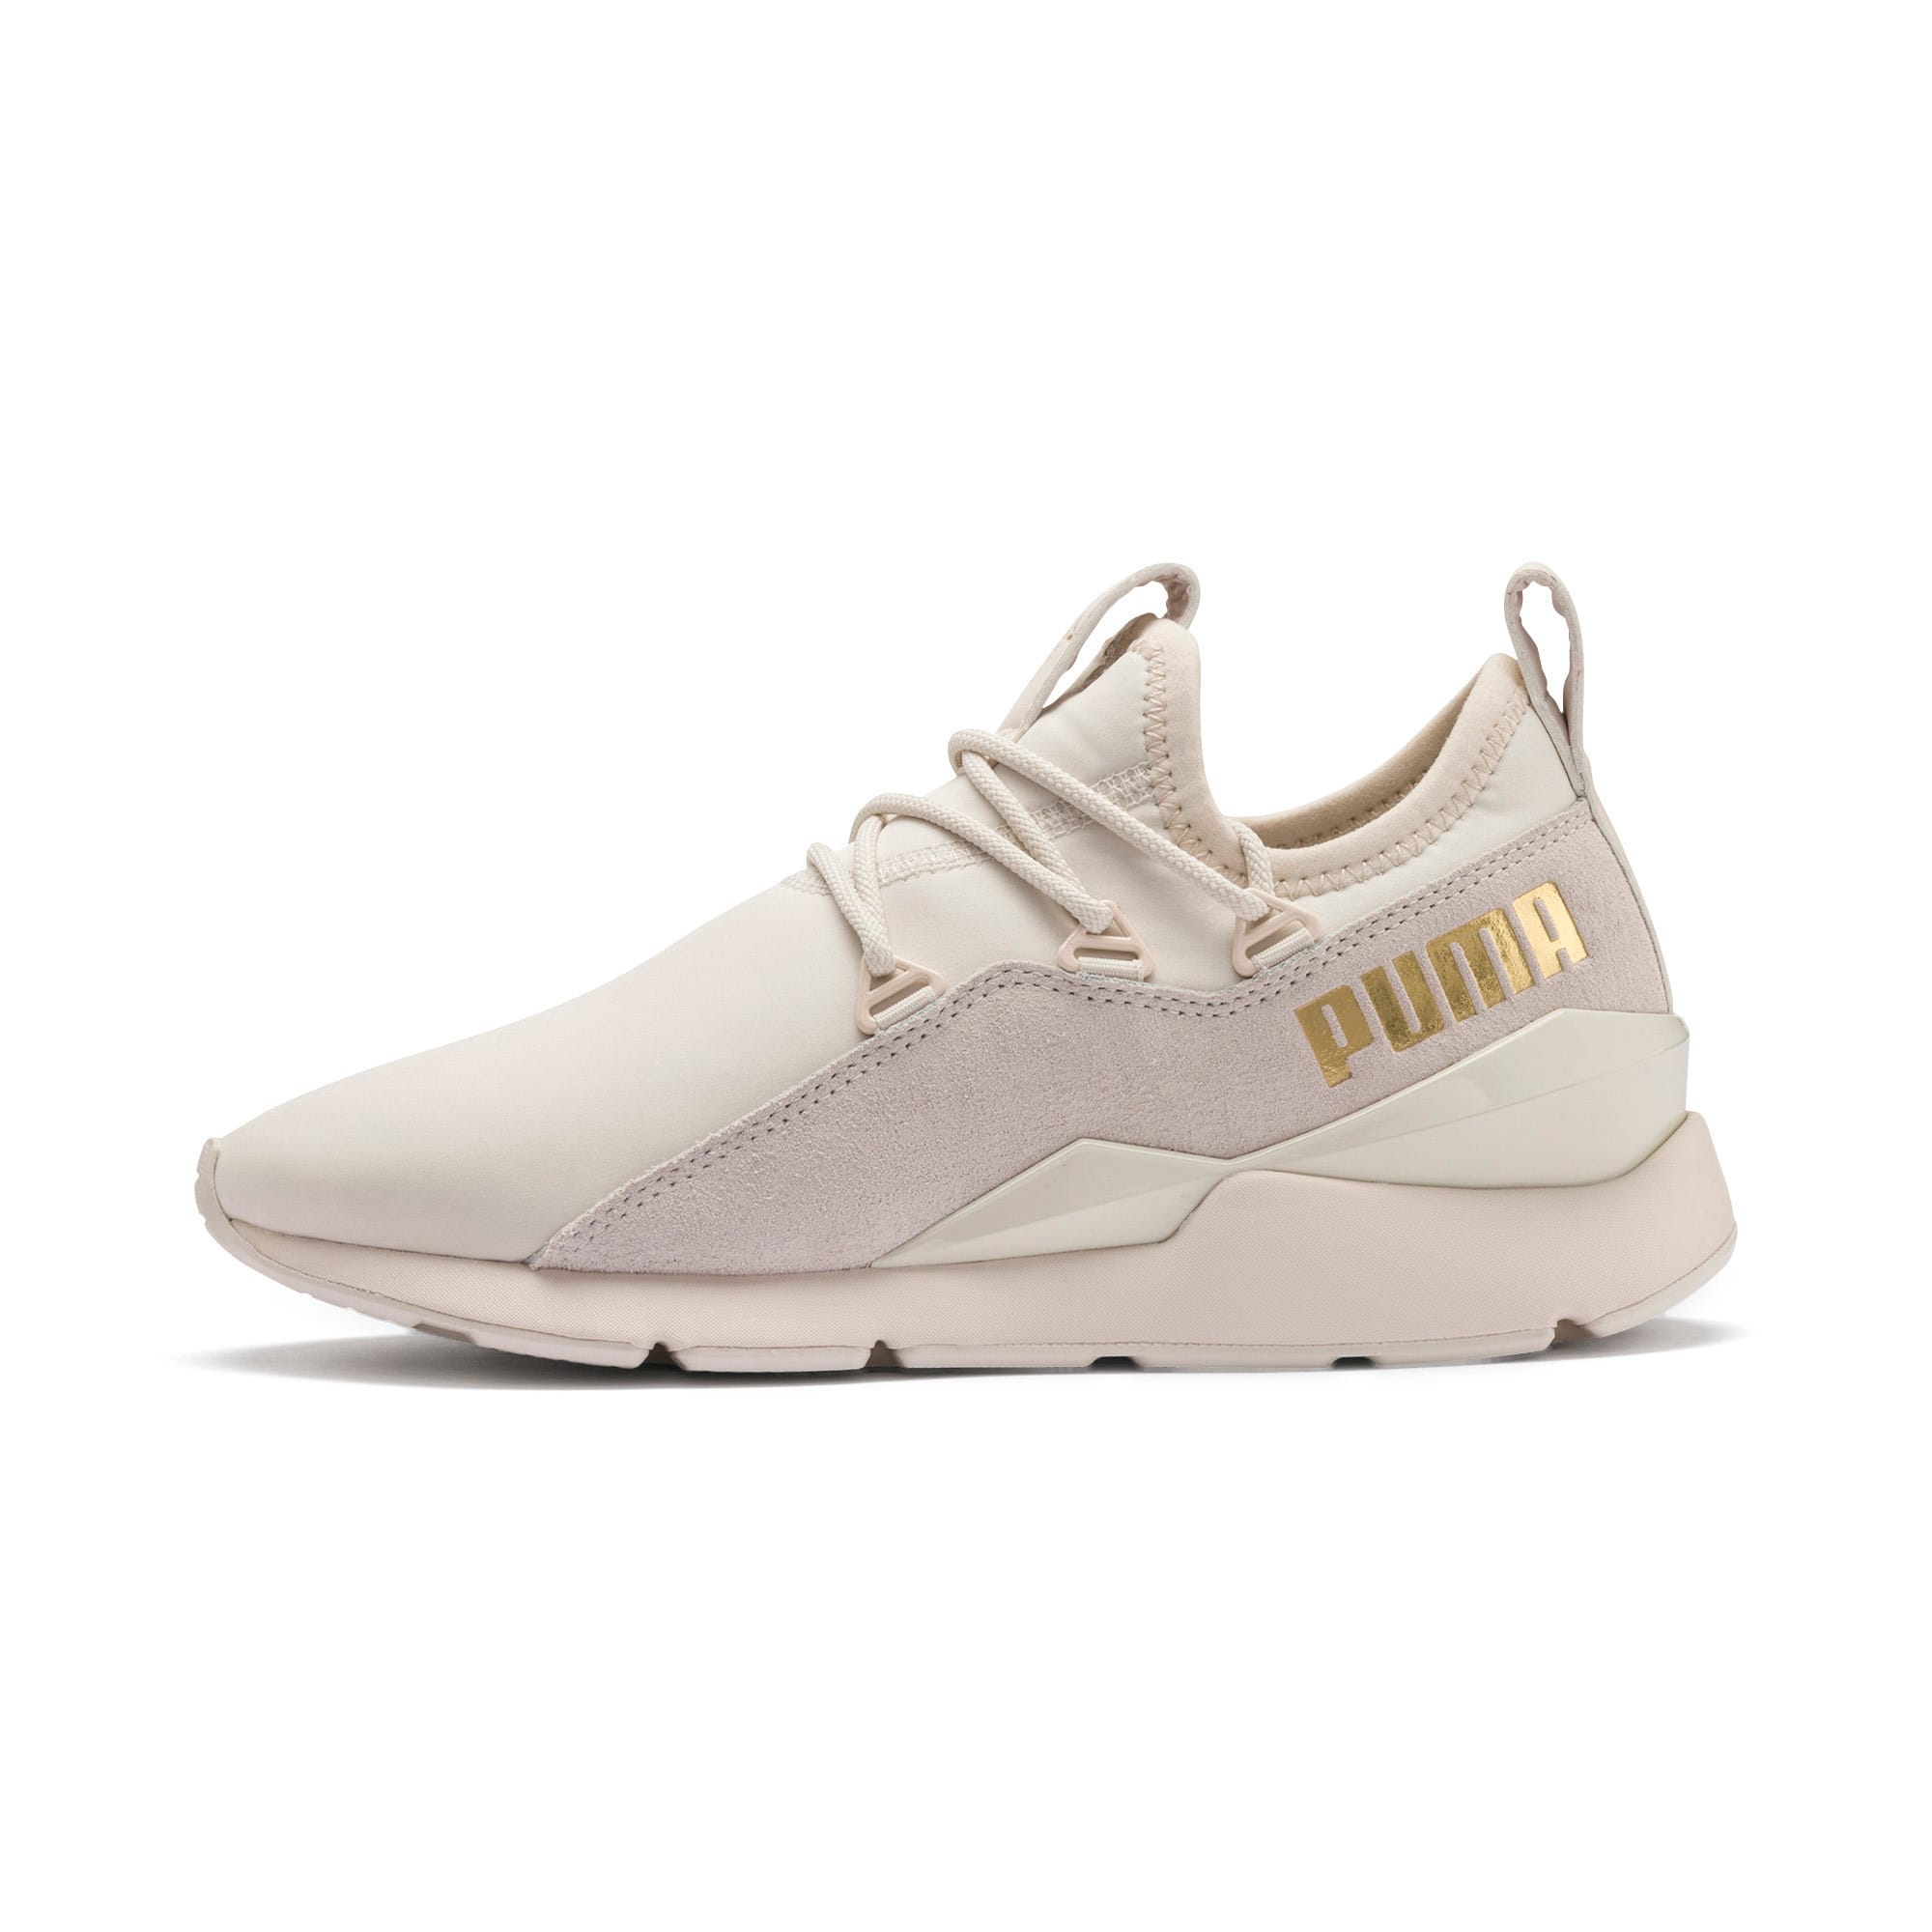 Thumbnail 1 of Muse 2 Metallic Women's Trainers, Pastel Parchment-PTeam Gold, medium-IND